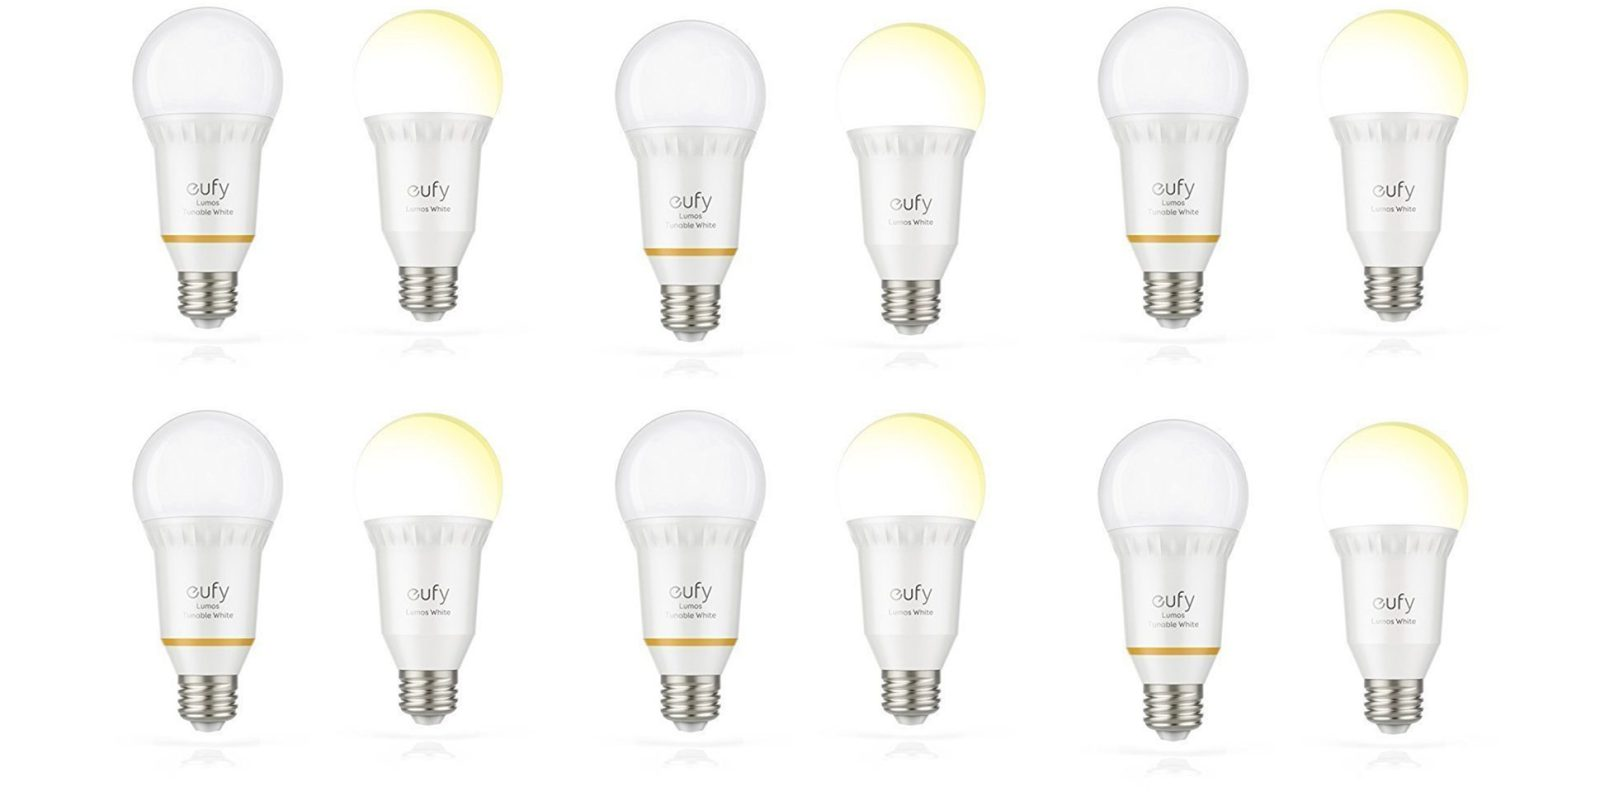 Green Deals: Eufy Lumos Smart LED Light Bulb from $12